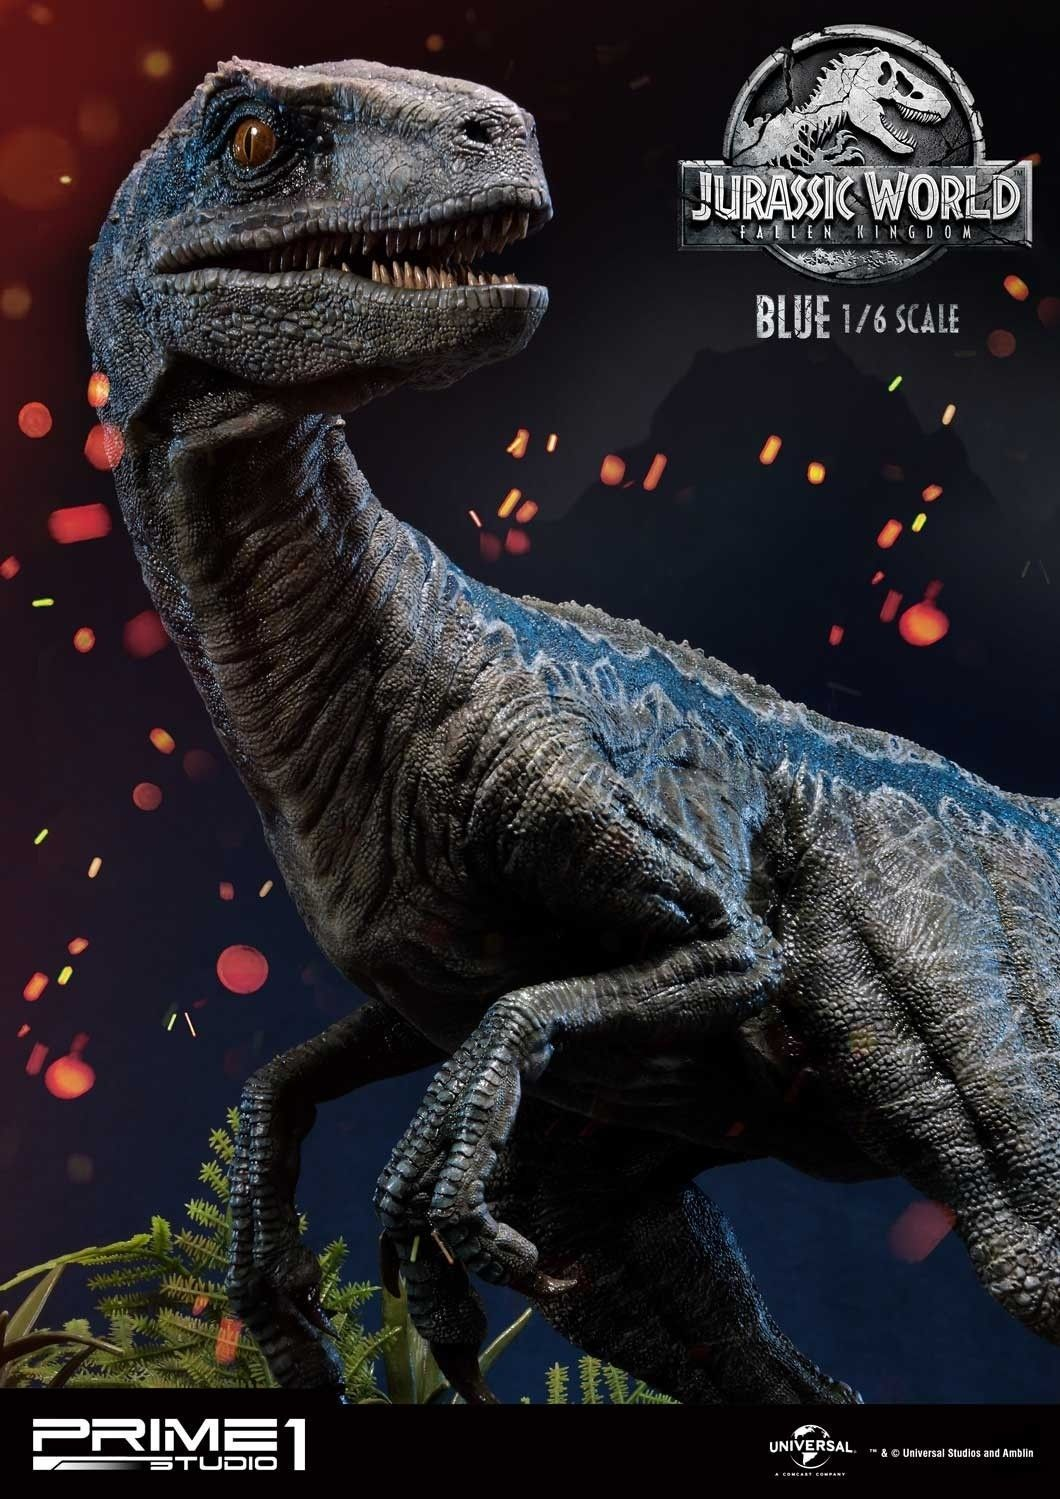 Jurassicparkworld Jurassic World Wallpaper Blue Jurassic World Jurassic World